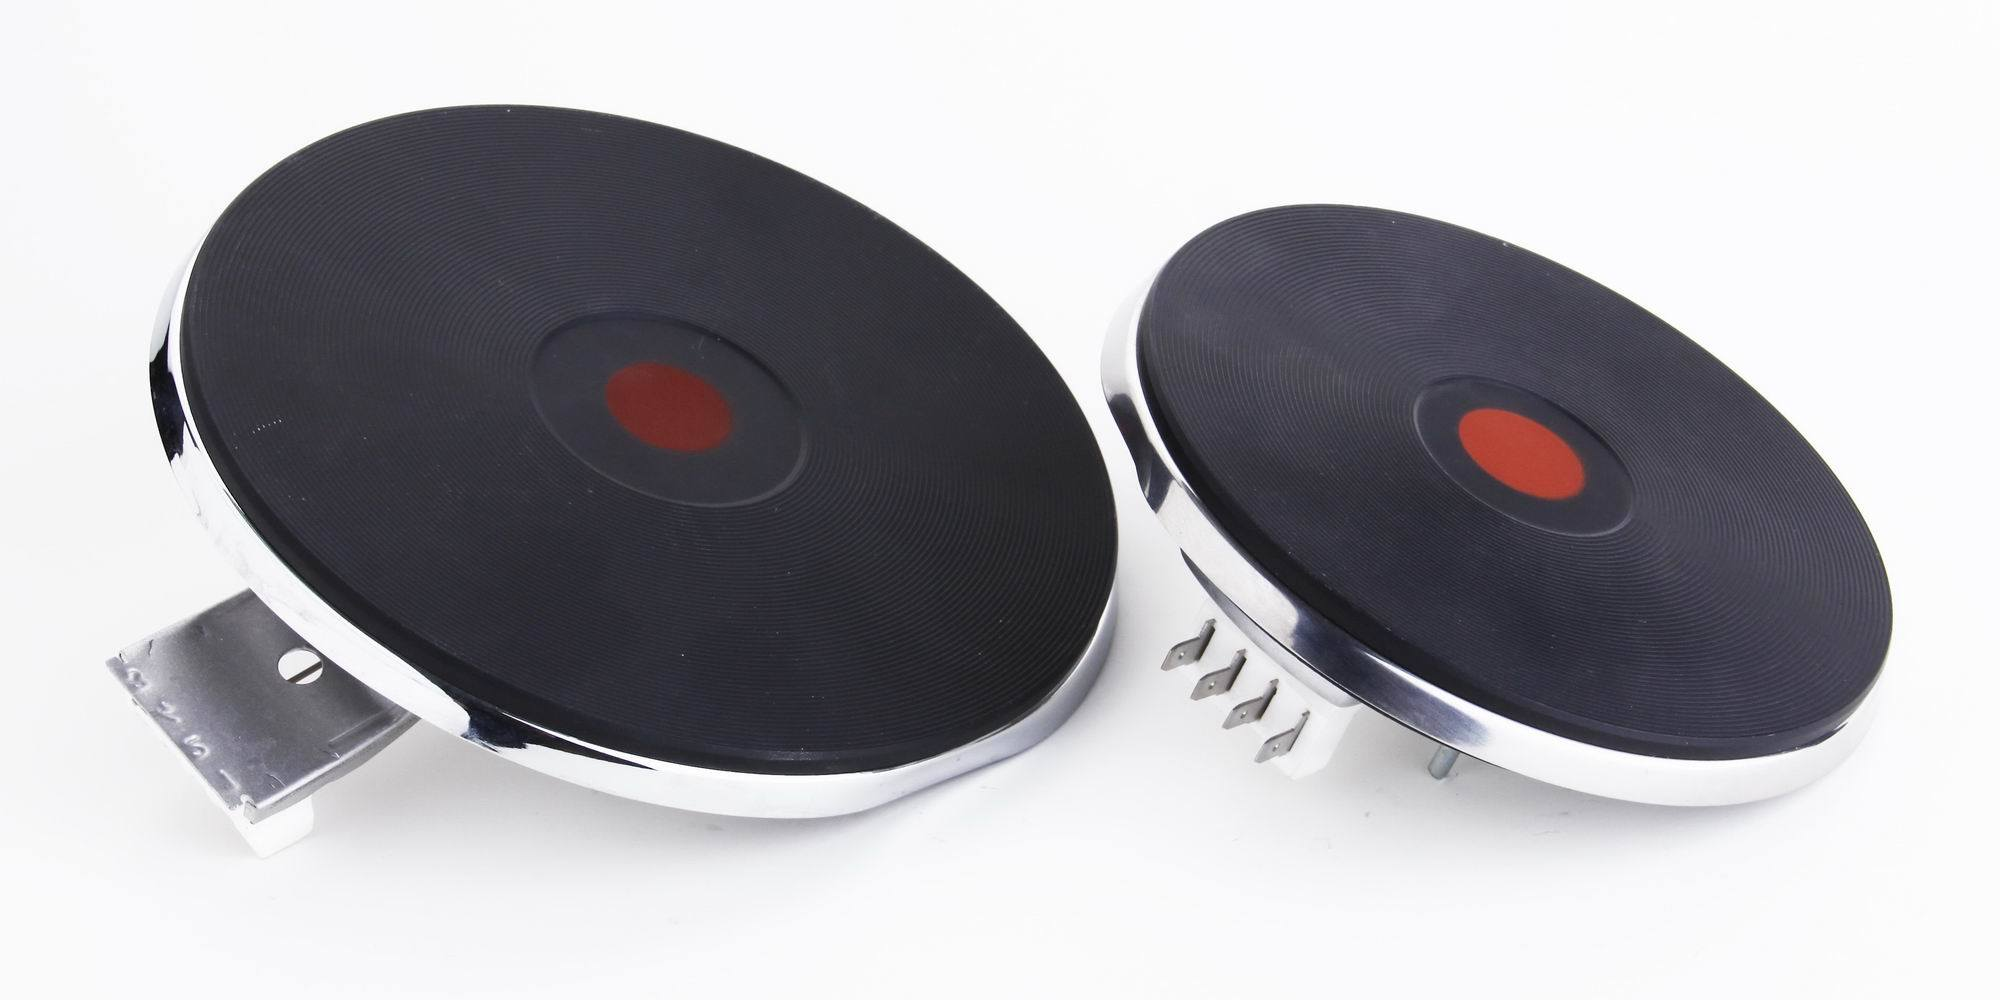 Hotplate/Oven Tray